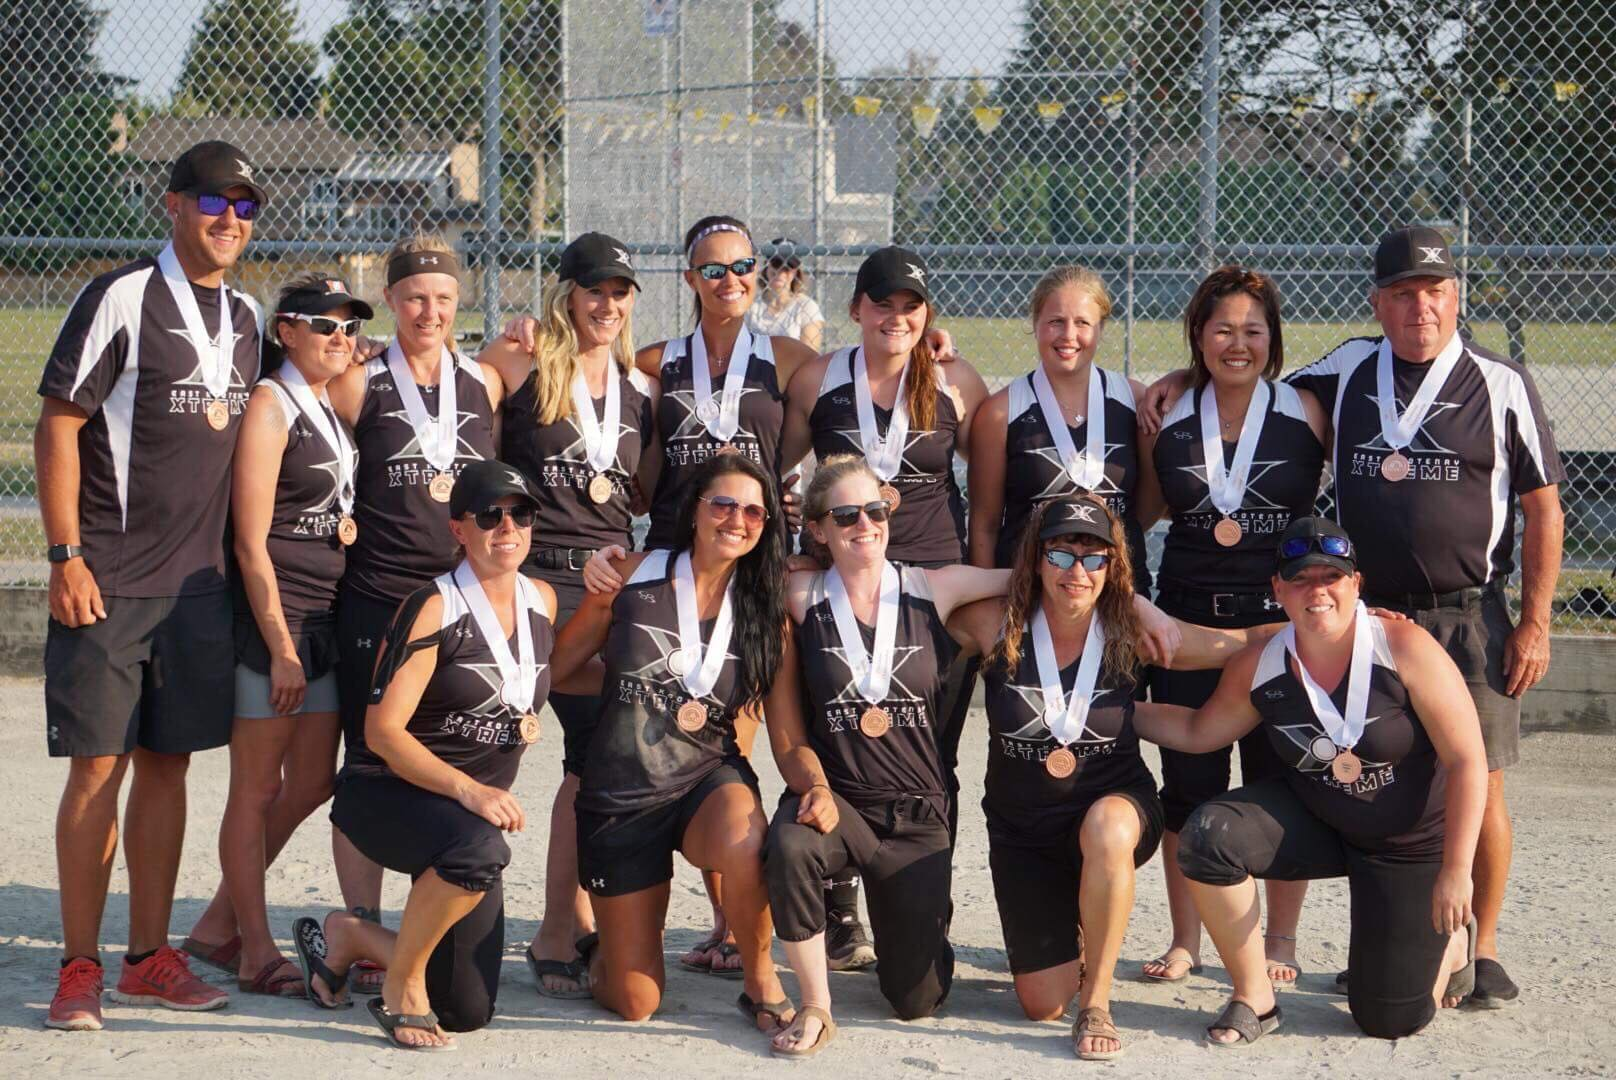 EK Xtreme earn bronze at Softball BC Senior B Championship